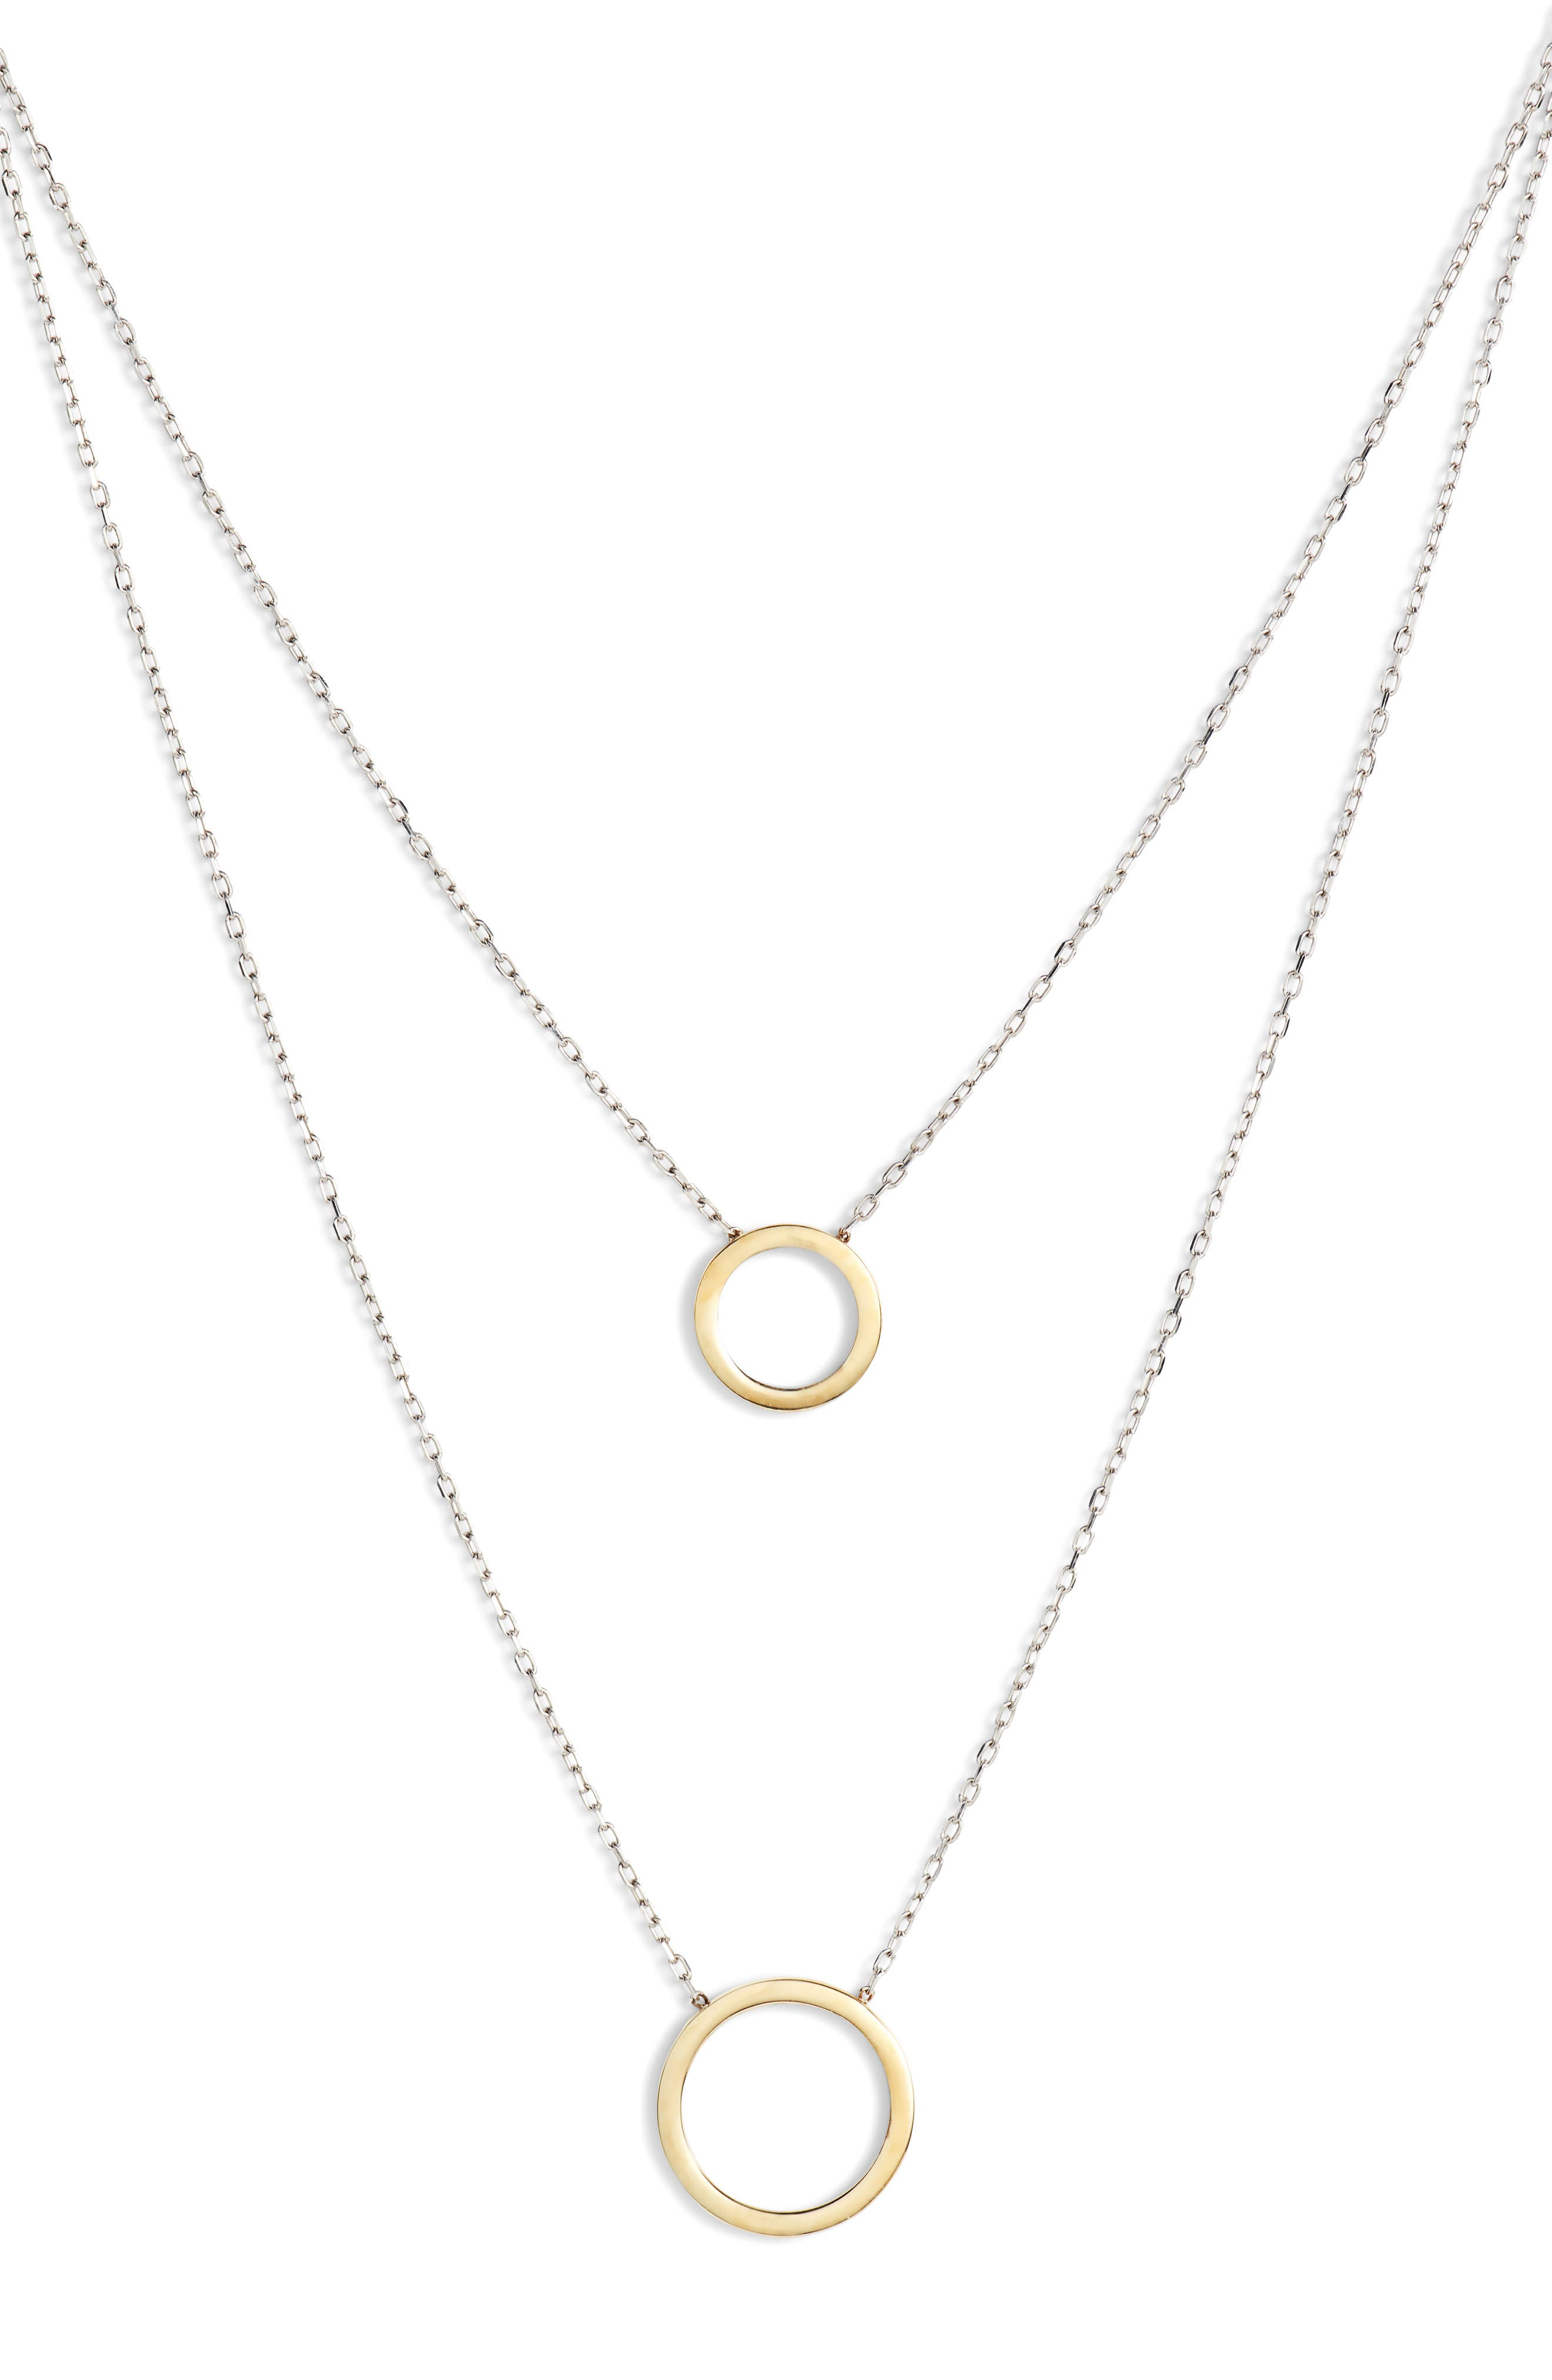 Ava Two Tone Open Circle Necklace,                             Main thumbnail 1, color,                             Gold/ Silver